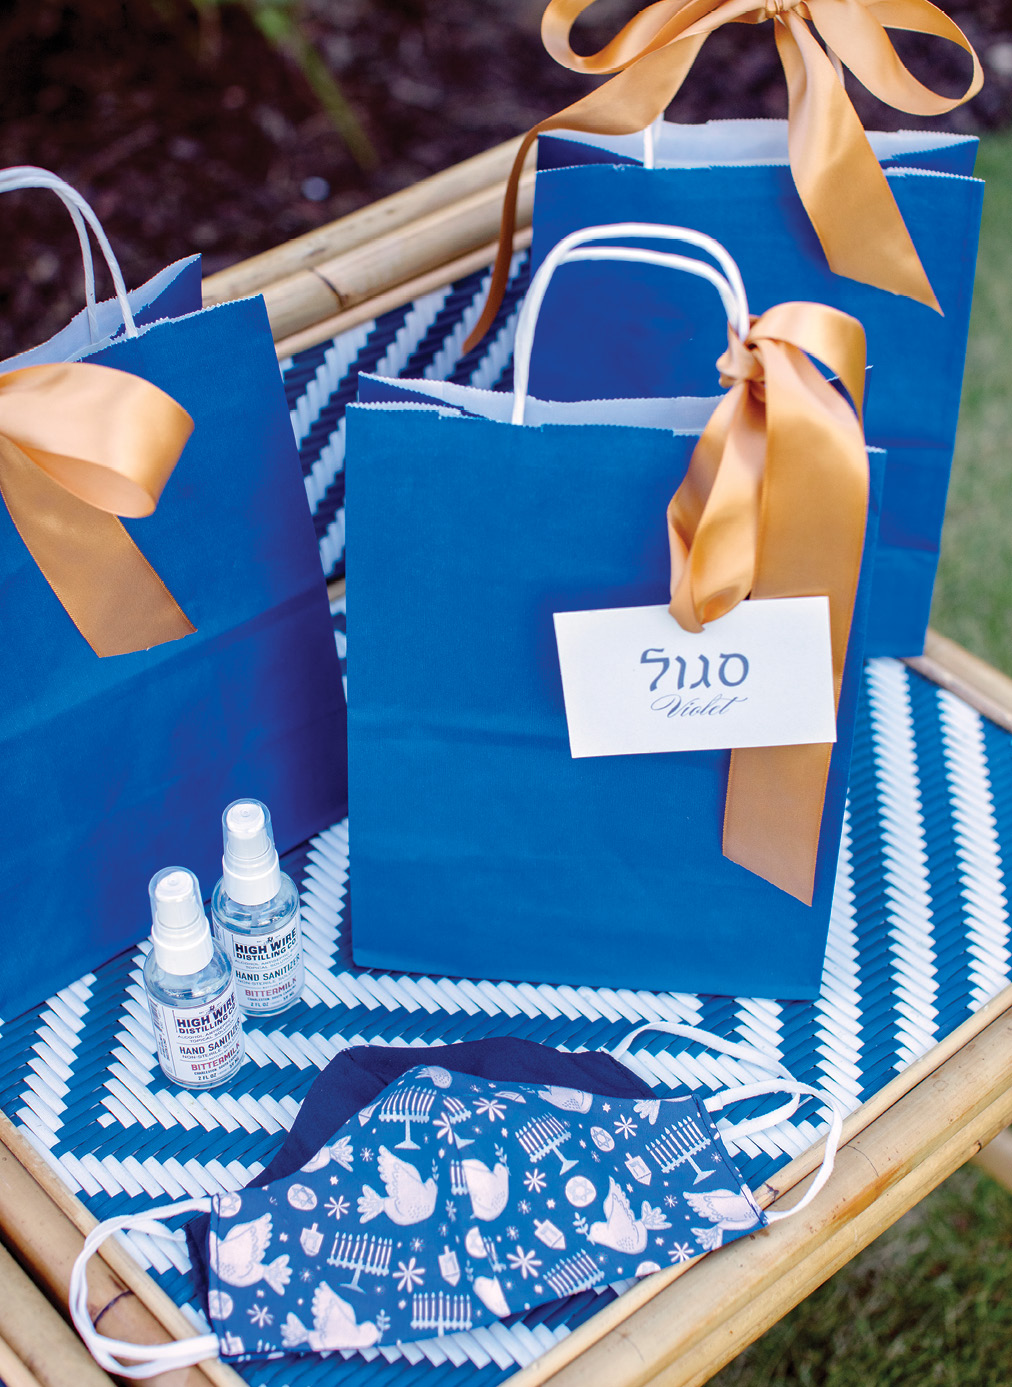 Hanukkah's blue and white palette is accented by silver, as well as gold, in the welcome bags, which offer local Bittermilk hand sanitizer and festive masks